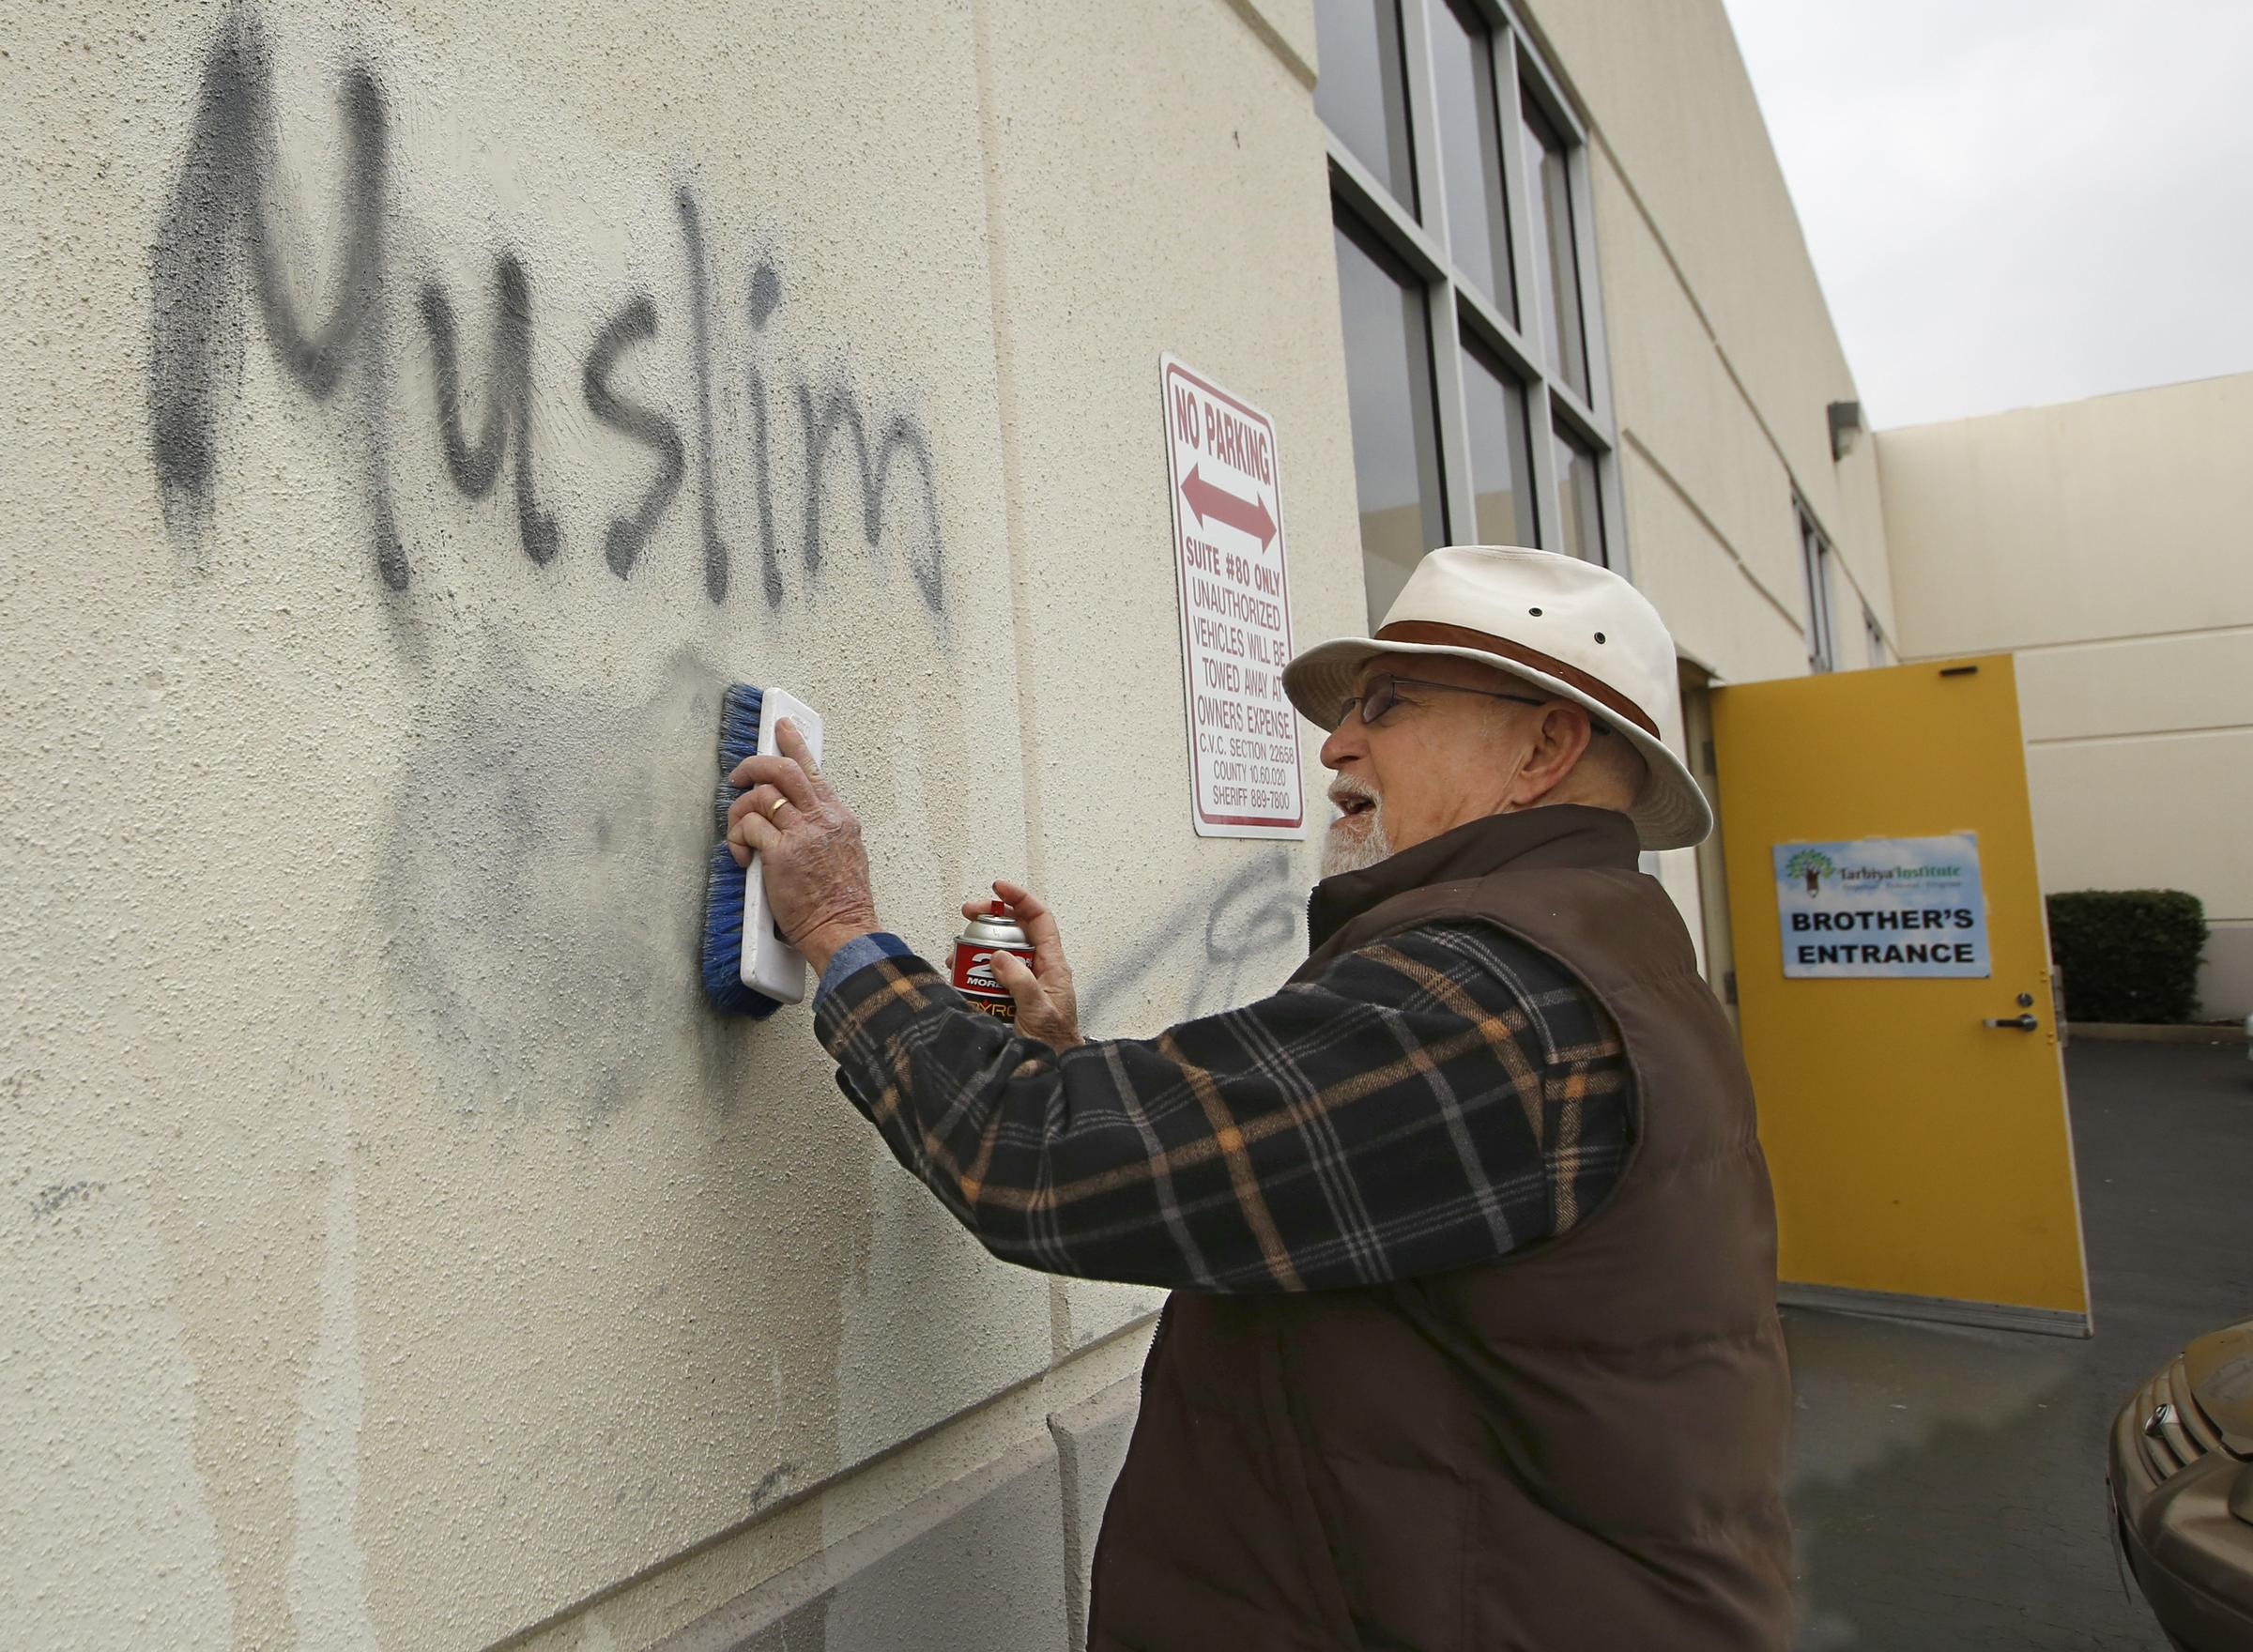 hate crime legislation Although hate crime legislation has been passed in nearly every jurisdiction, it's difficult to accurately estimate the prevalence of these crimes in america.